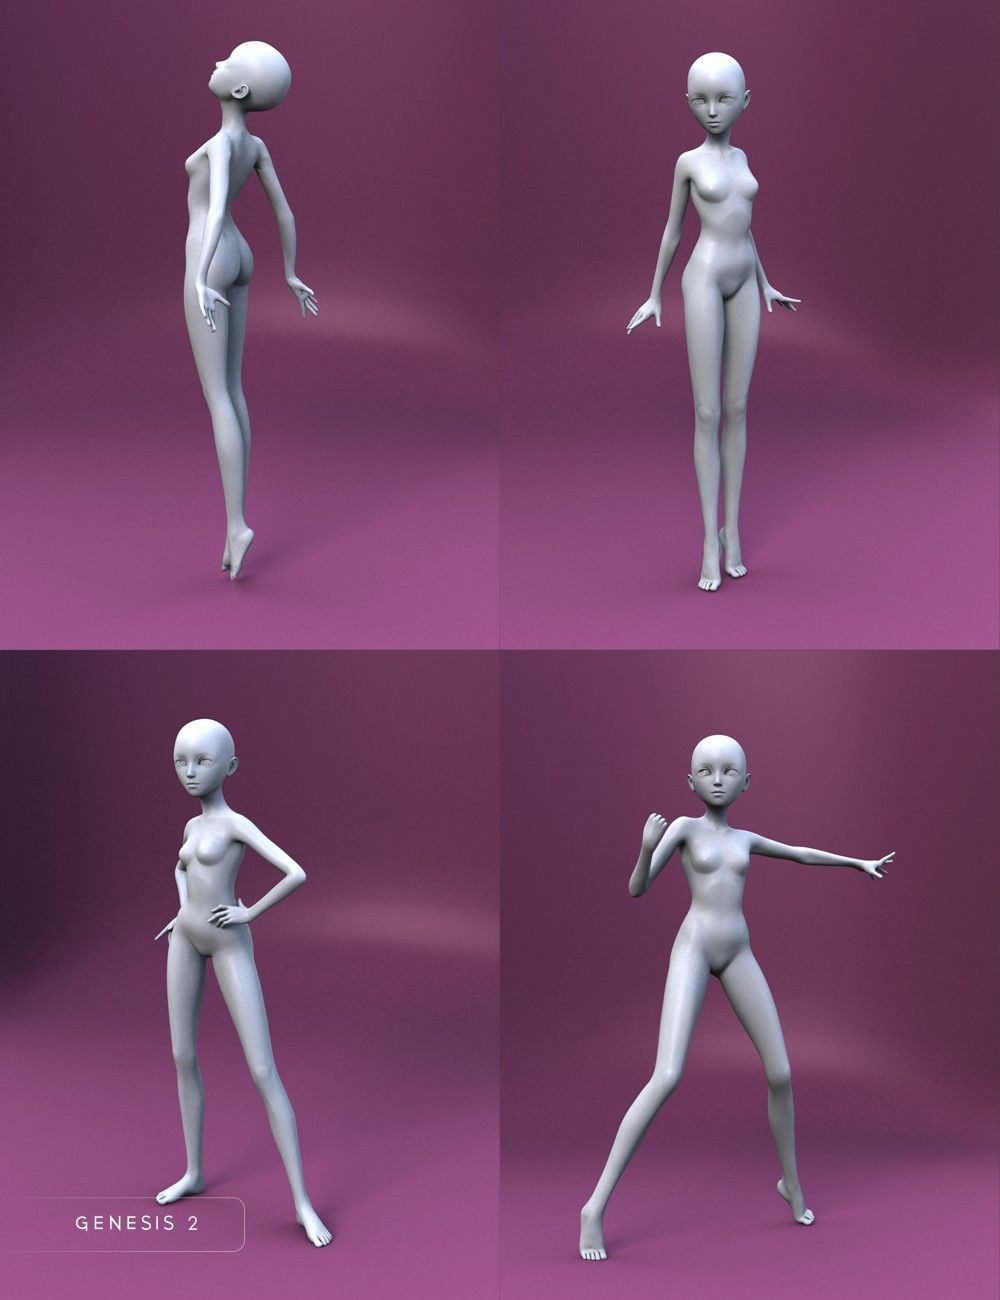 Bell Anime Poses For Keiko 6 And Aiko 6 3d Models And 3d Software By Daz 3d Art Reference Poses Anime Poses Drawing Poses